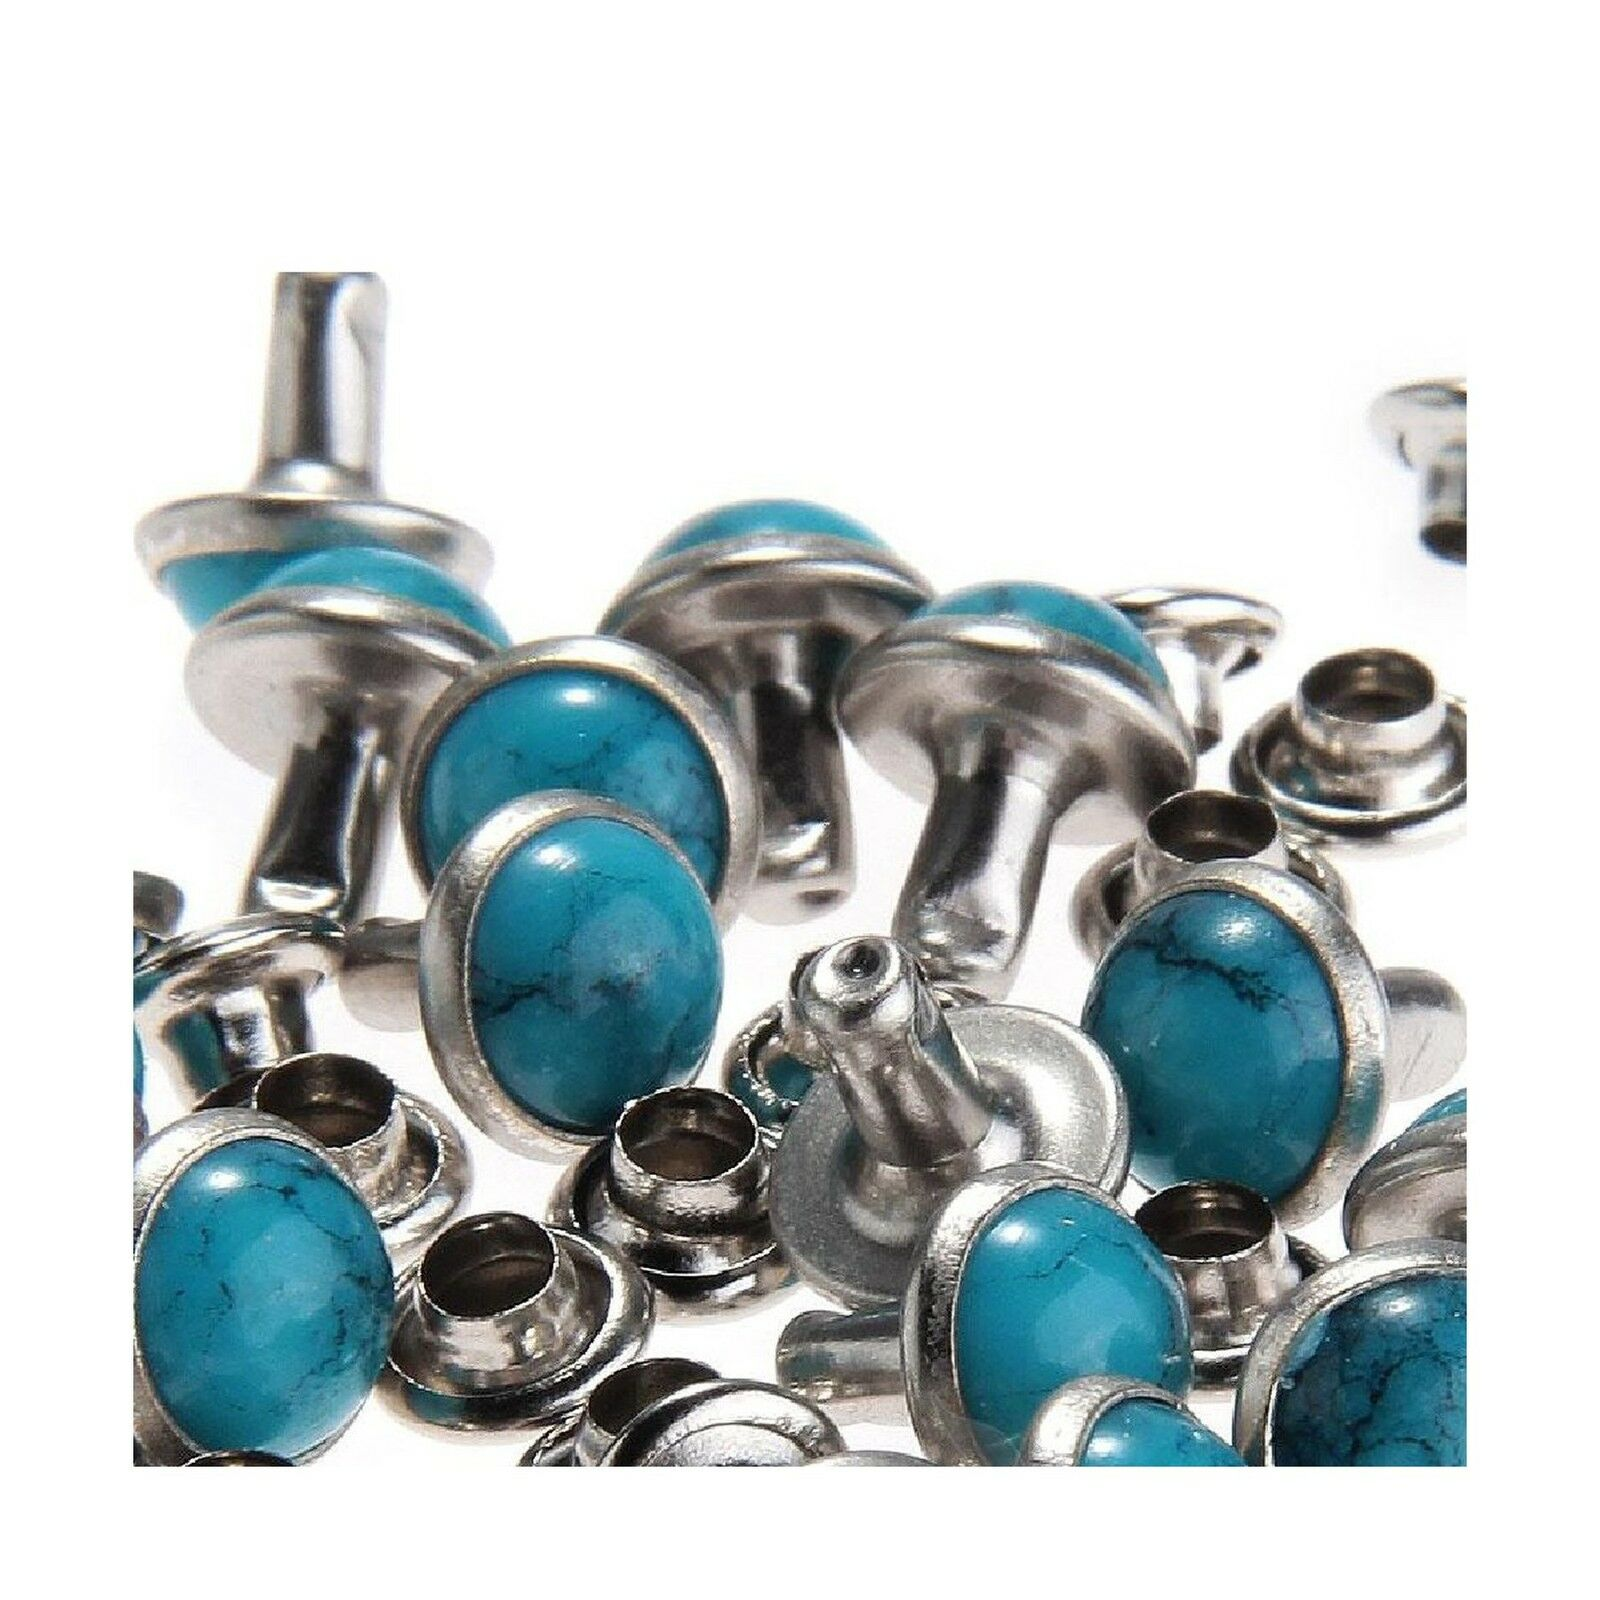 RUBYCA Blue Turquoise Rapid Rivets Studs DIY Leather-Craft for ... Free Shipping 1 of 4Only 3 available ...